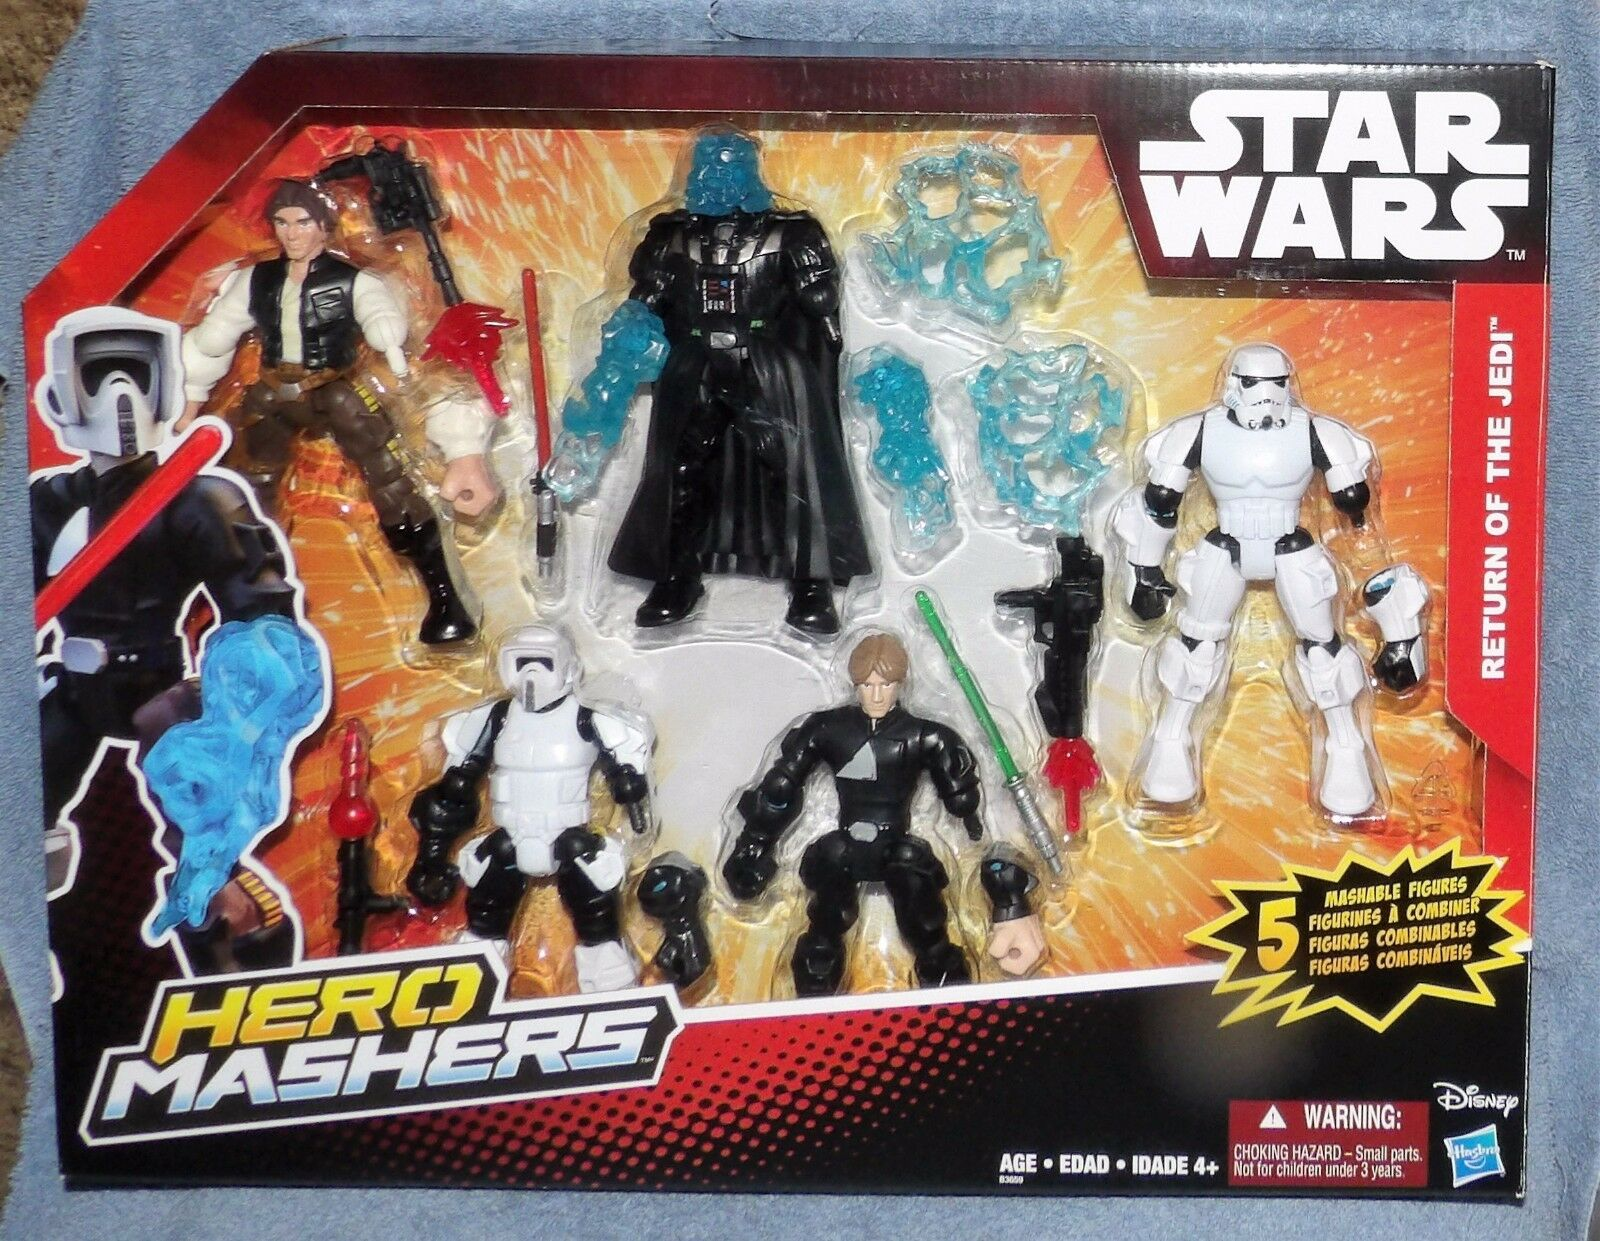 STAR WARS 2015 HERO MASHERS RETURN OF THE JEDI SET 5 FIGURES